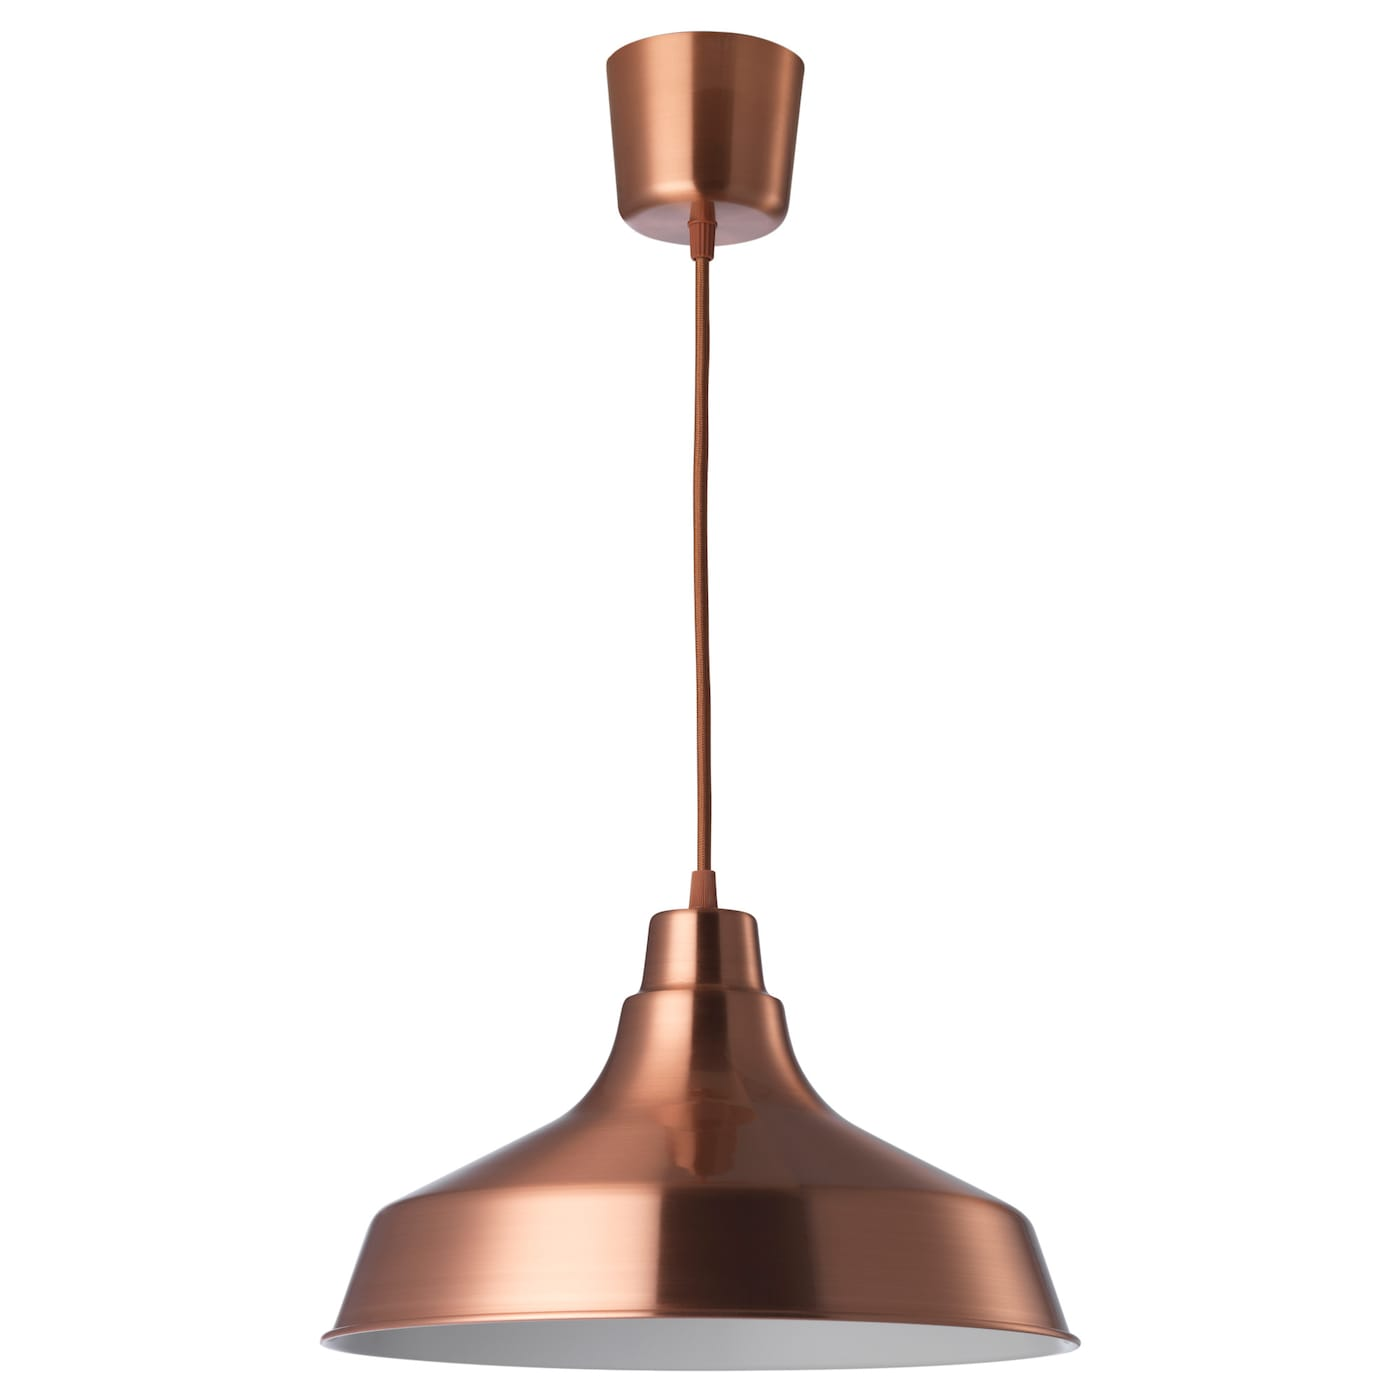 Vindkre pendant lamp copper colour 36 cm ikea ikea vindkre pendant lamp aloadofball